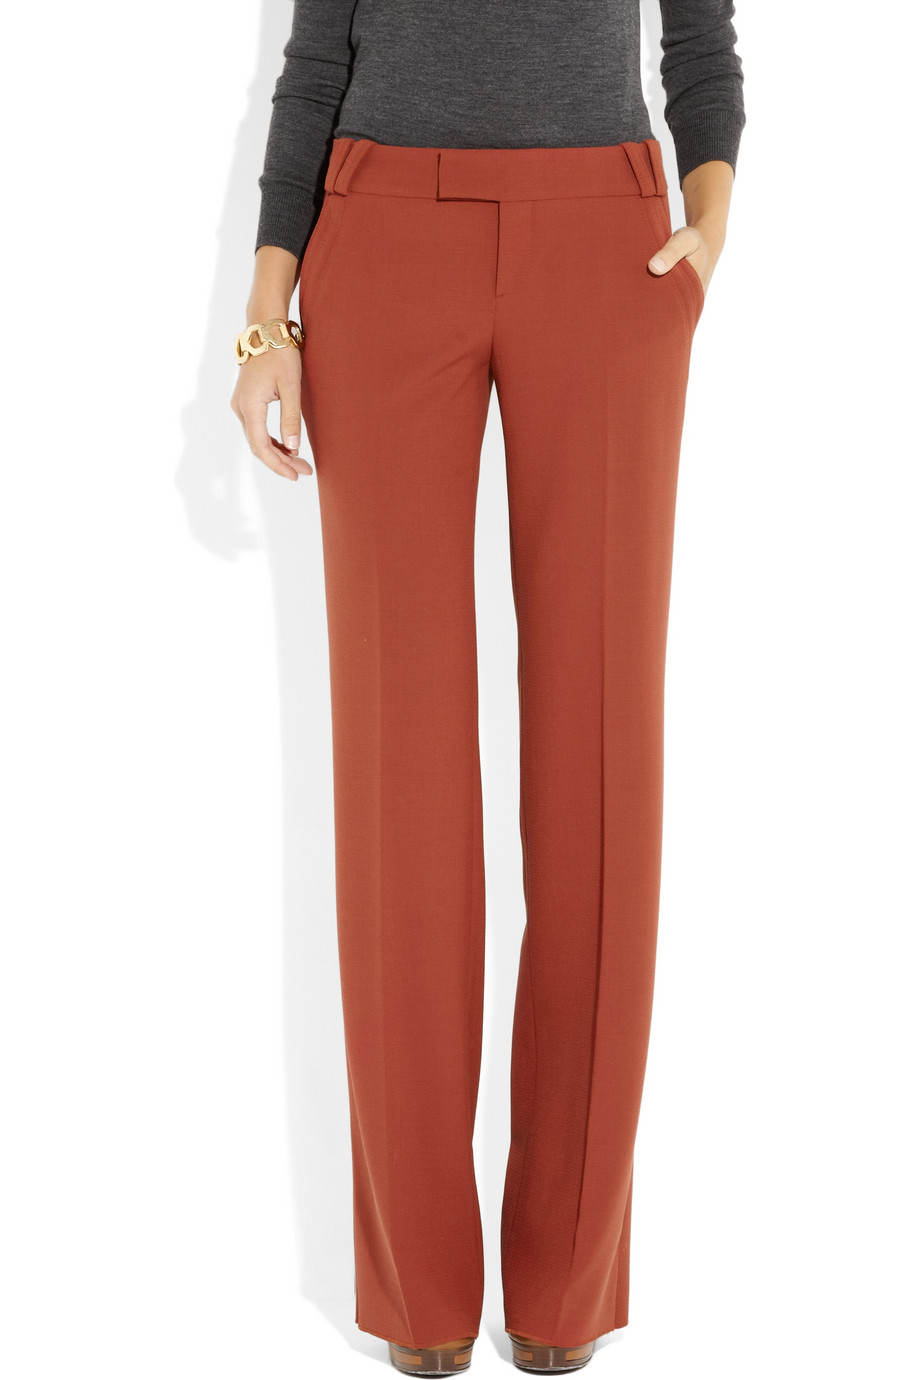 Shop our Collection of Women's Wide Leg Pants at exploreblogirvd.gq for the Latest Designer Brands & Styles. FREE SHIPPING AVAILABLE! Macy's Presents: The Edit- A curated mix of fashion and inspiration Check It Out. Style & Co Stretch Wide-Leg Pants, Created for Macy's.